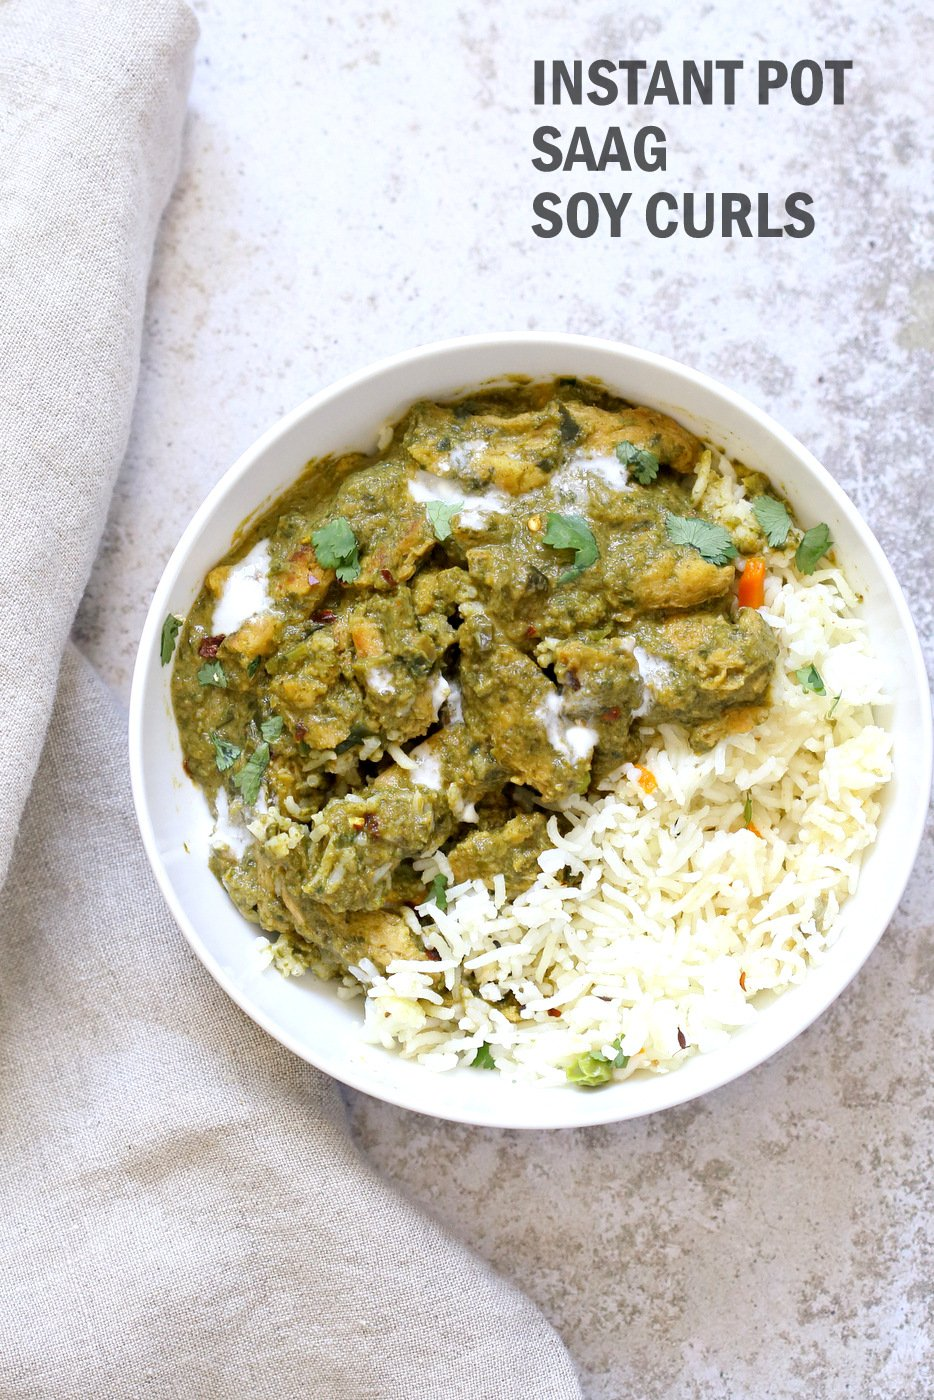 Instant Pot Vegan Chicken Saag with Soy Curls. Use seitan, tempeh, baked tofu, chickpeas or chikin substitutes for variation. Use potatoes to make Saag Aloo. 1 Pot Soy curls in Spinach Sauce. #Vegan #Glutenfree #Recipe Can be Soy-free and Nut-free  #veganricha | VeganRicha.com